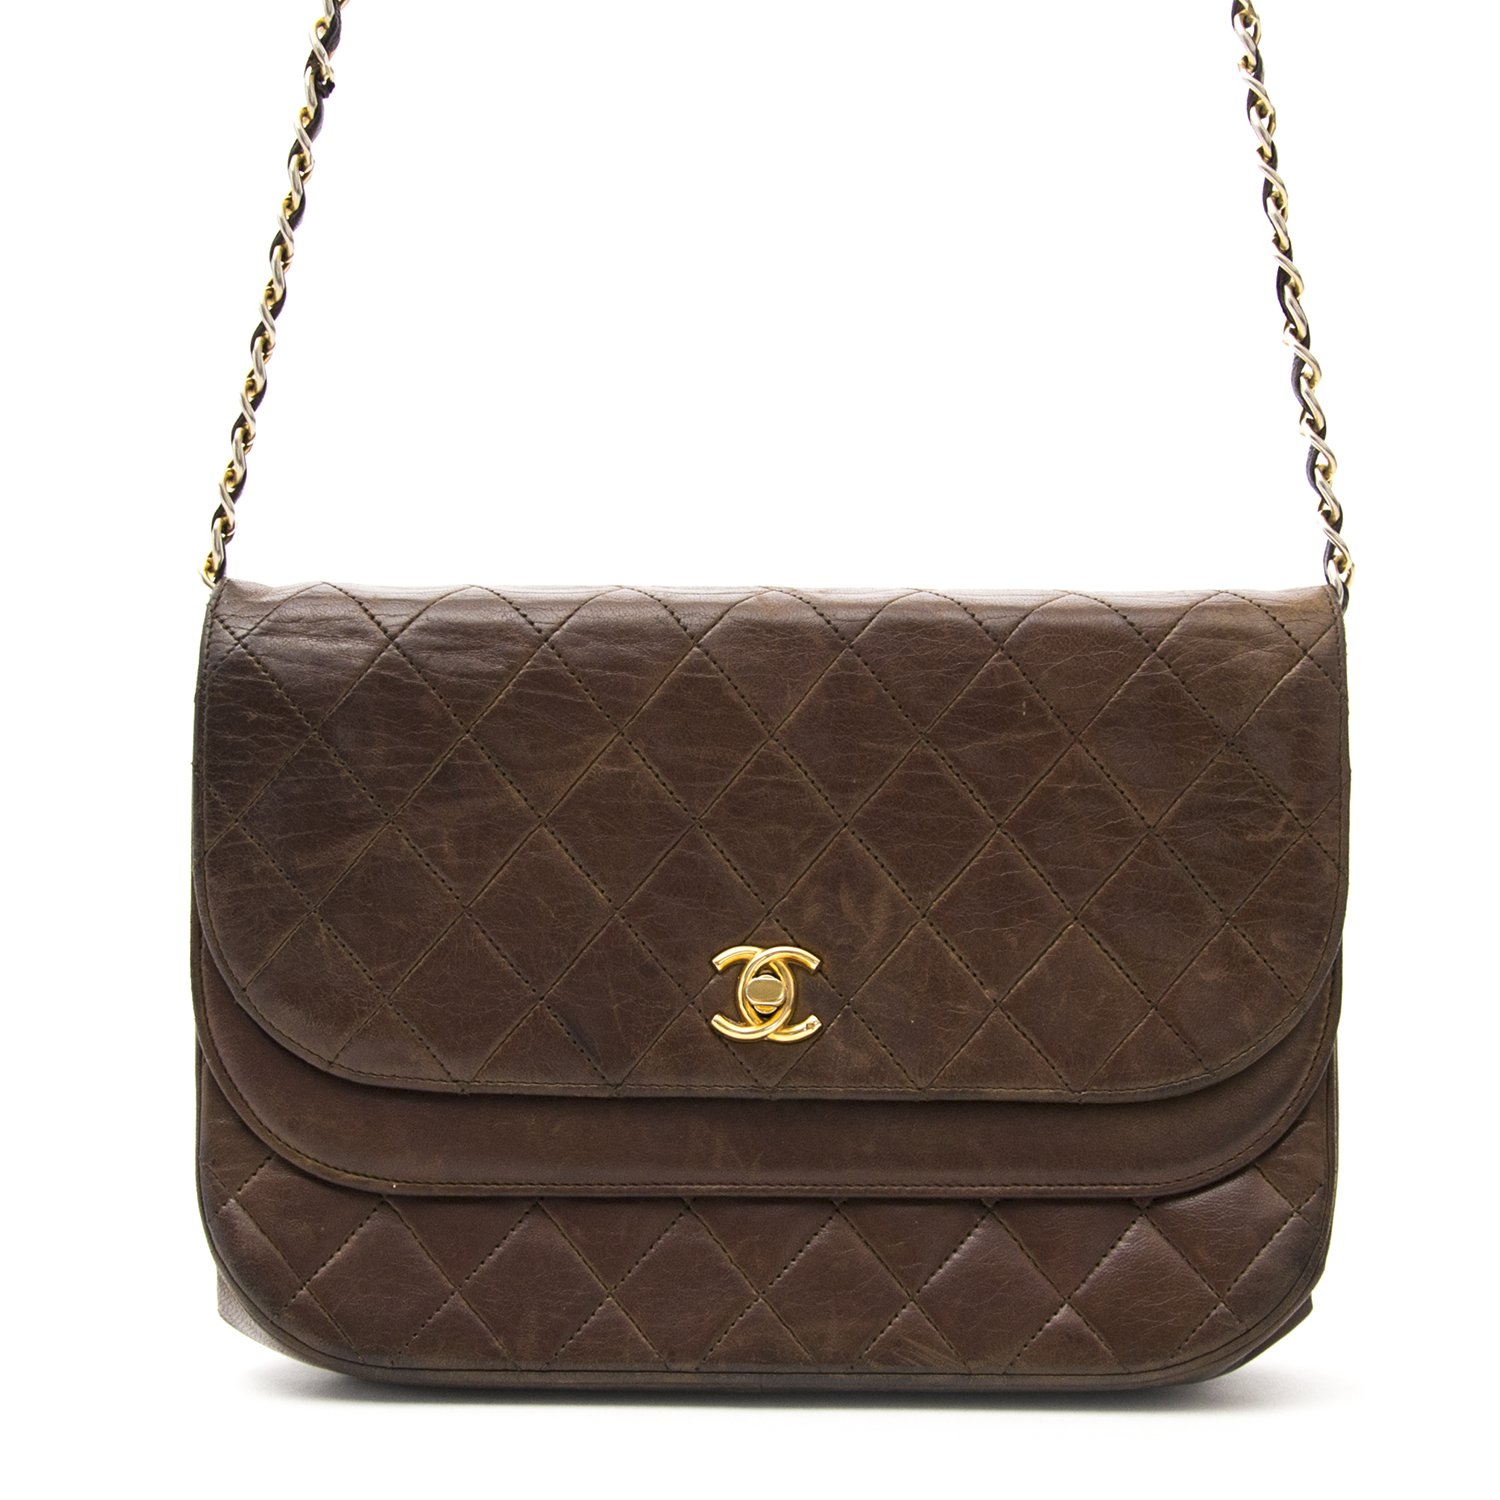 Secondhand Chanel brown handbag for the best price at Labellov webshop. Safe and secure online shopping with 100% authenticity. Seconde main Chanel brun sac à main pour le meilleur prix.